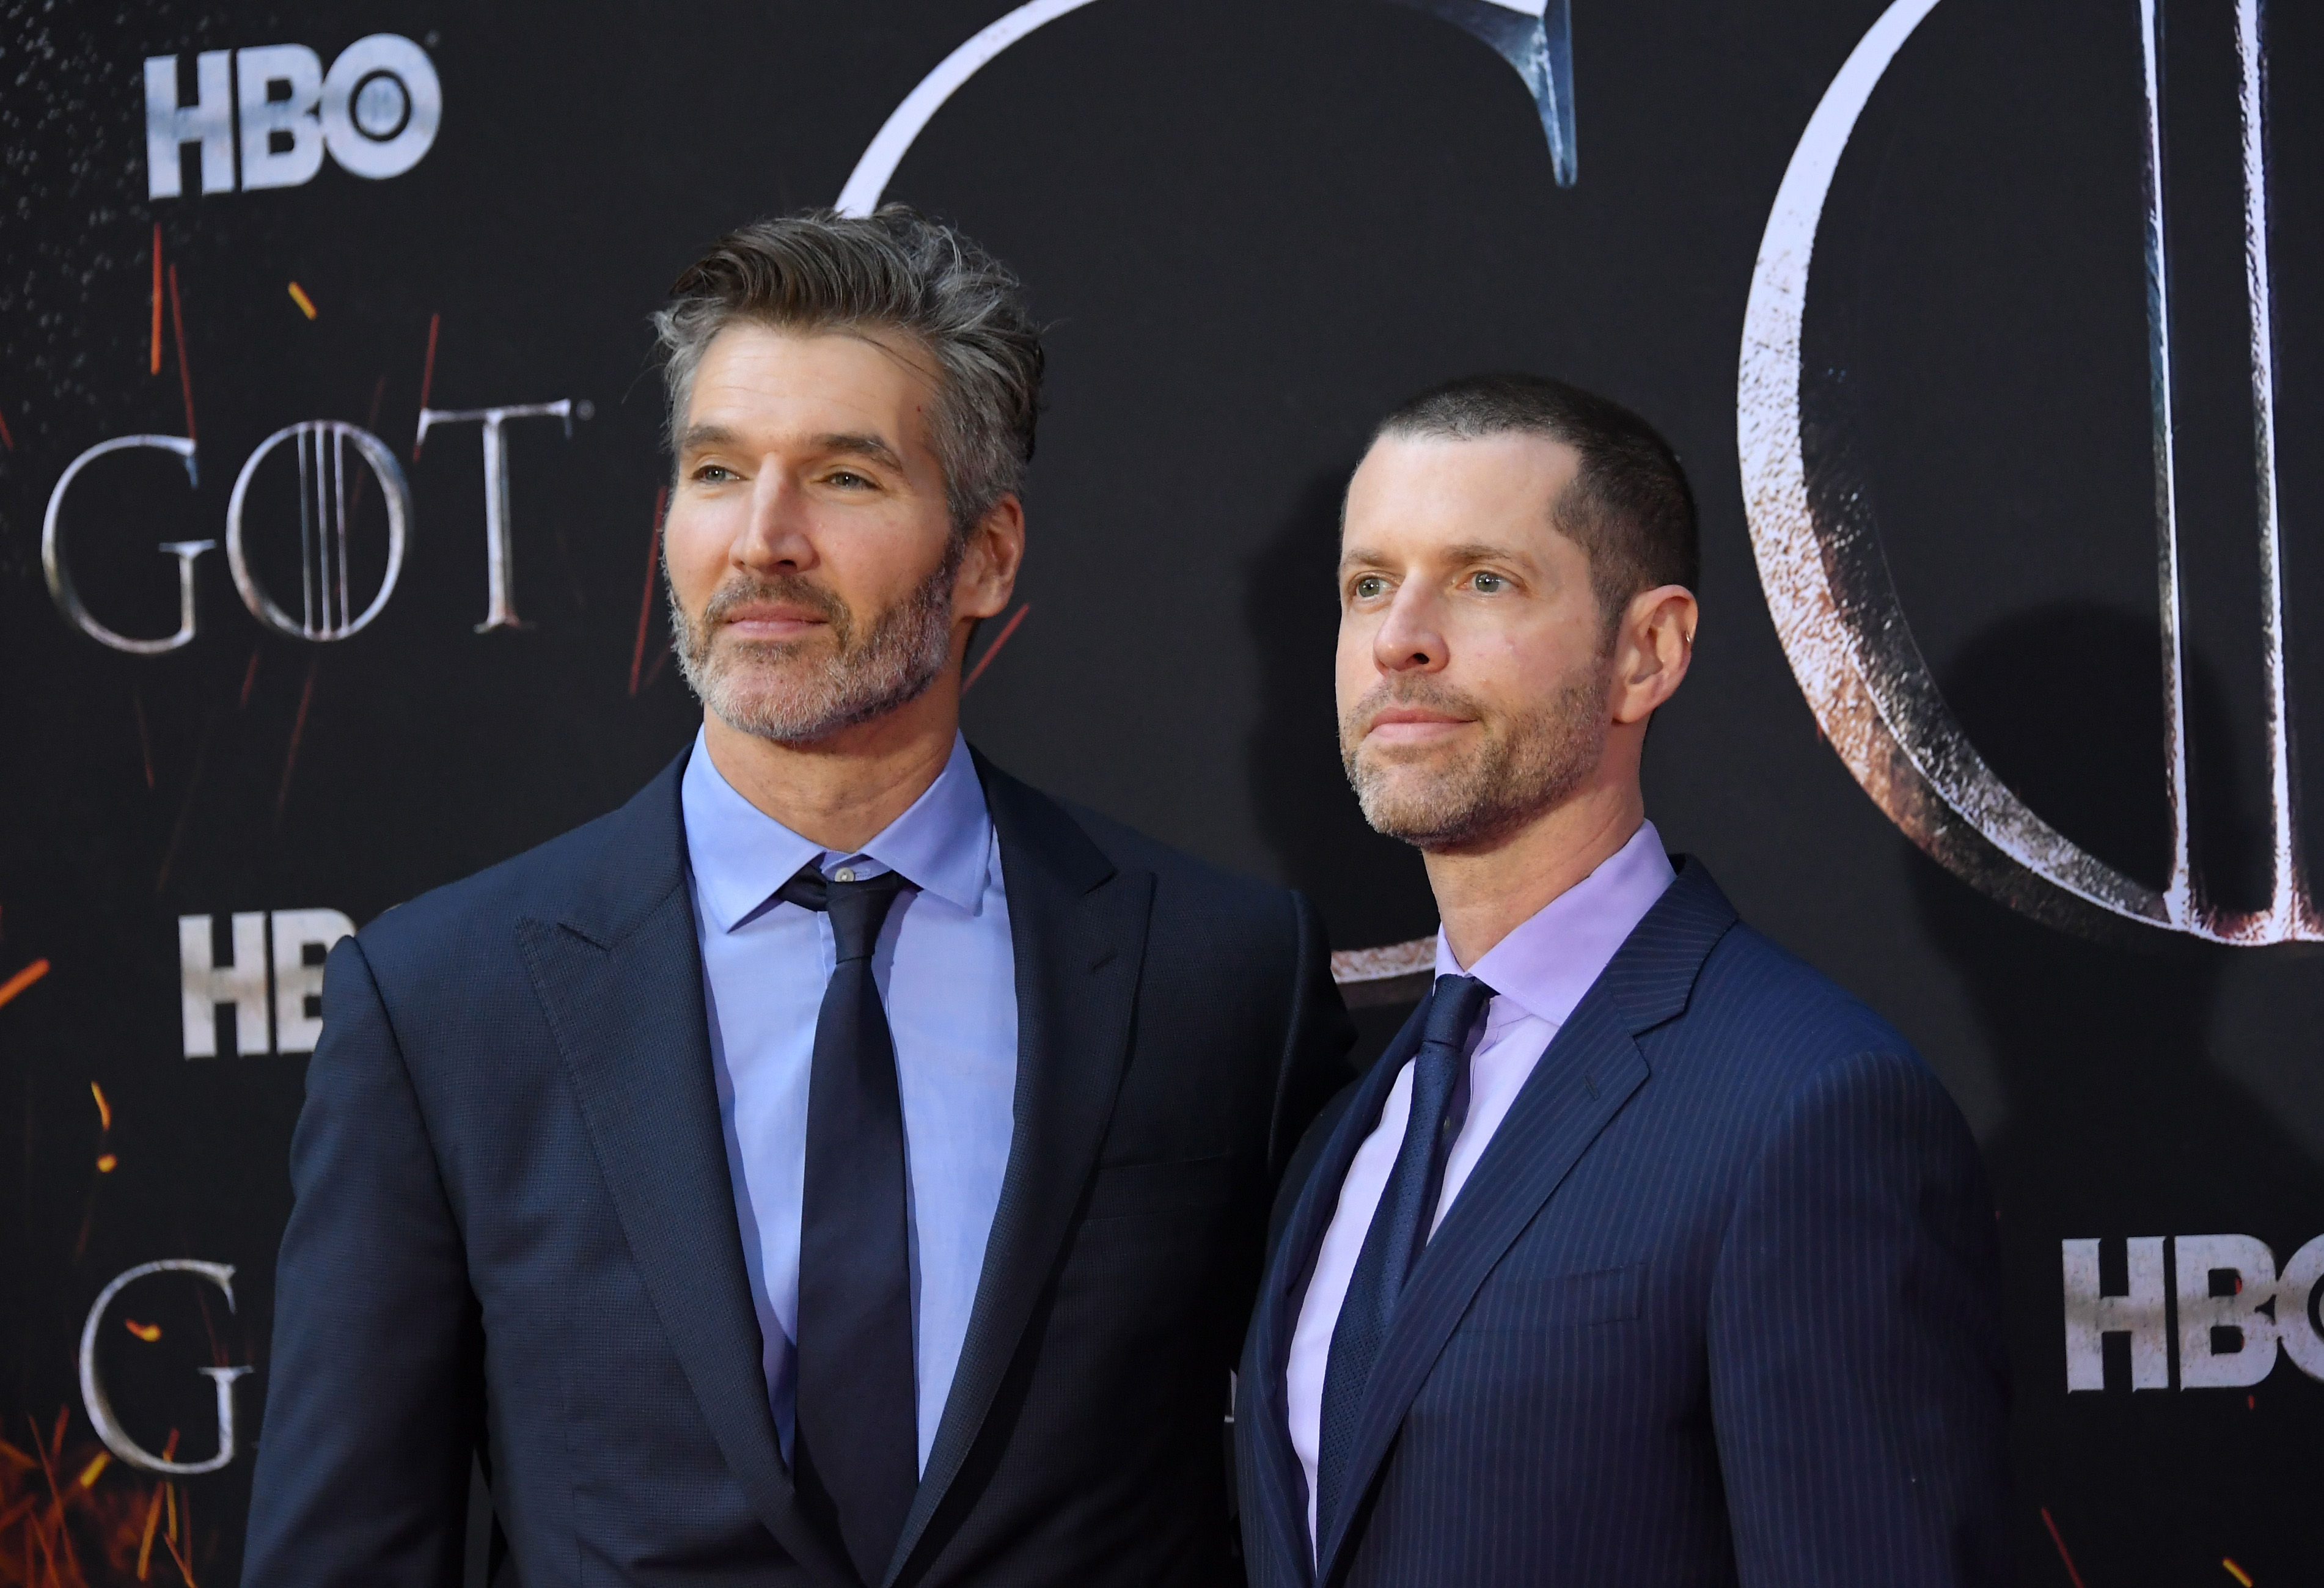 David Benioff and D. B. Weiss attend the  Game Of Thrones  season 8 premiere on April 3, 2019 in New York City.